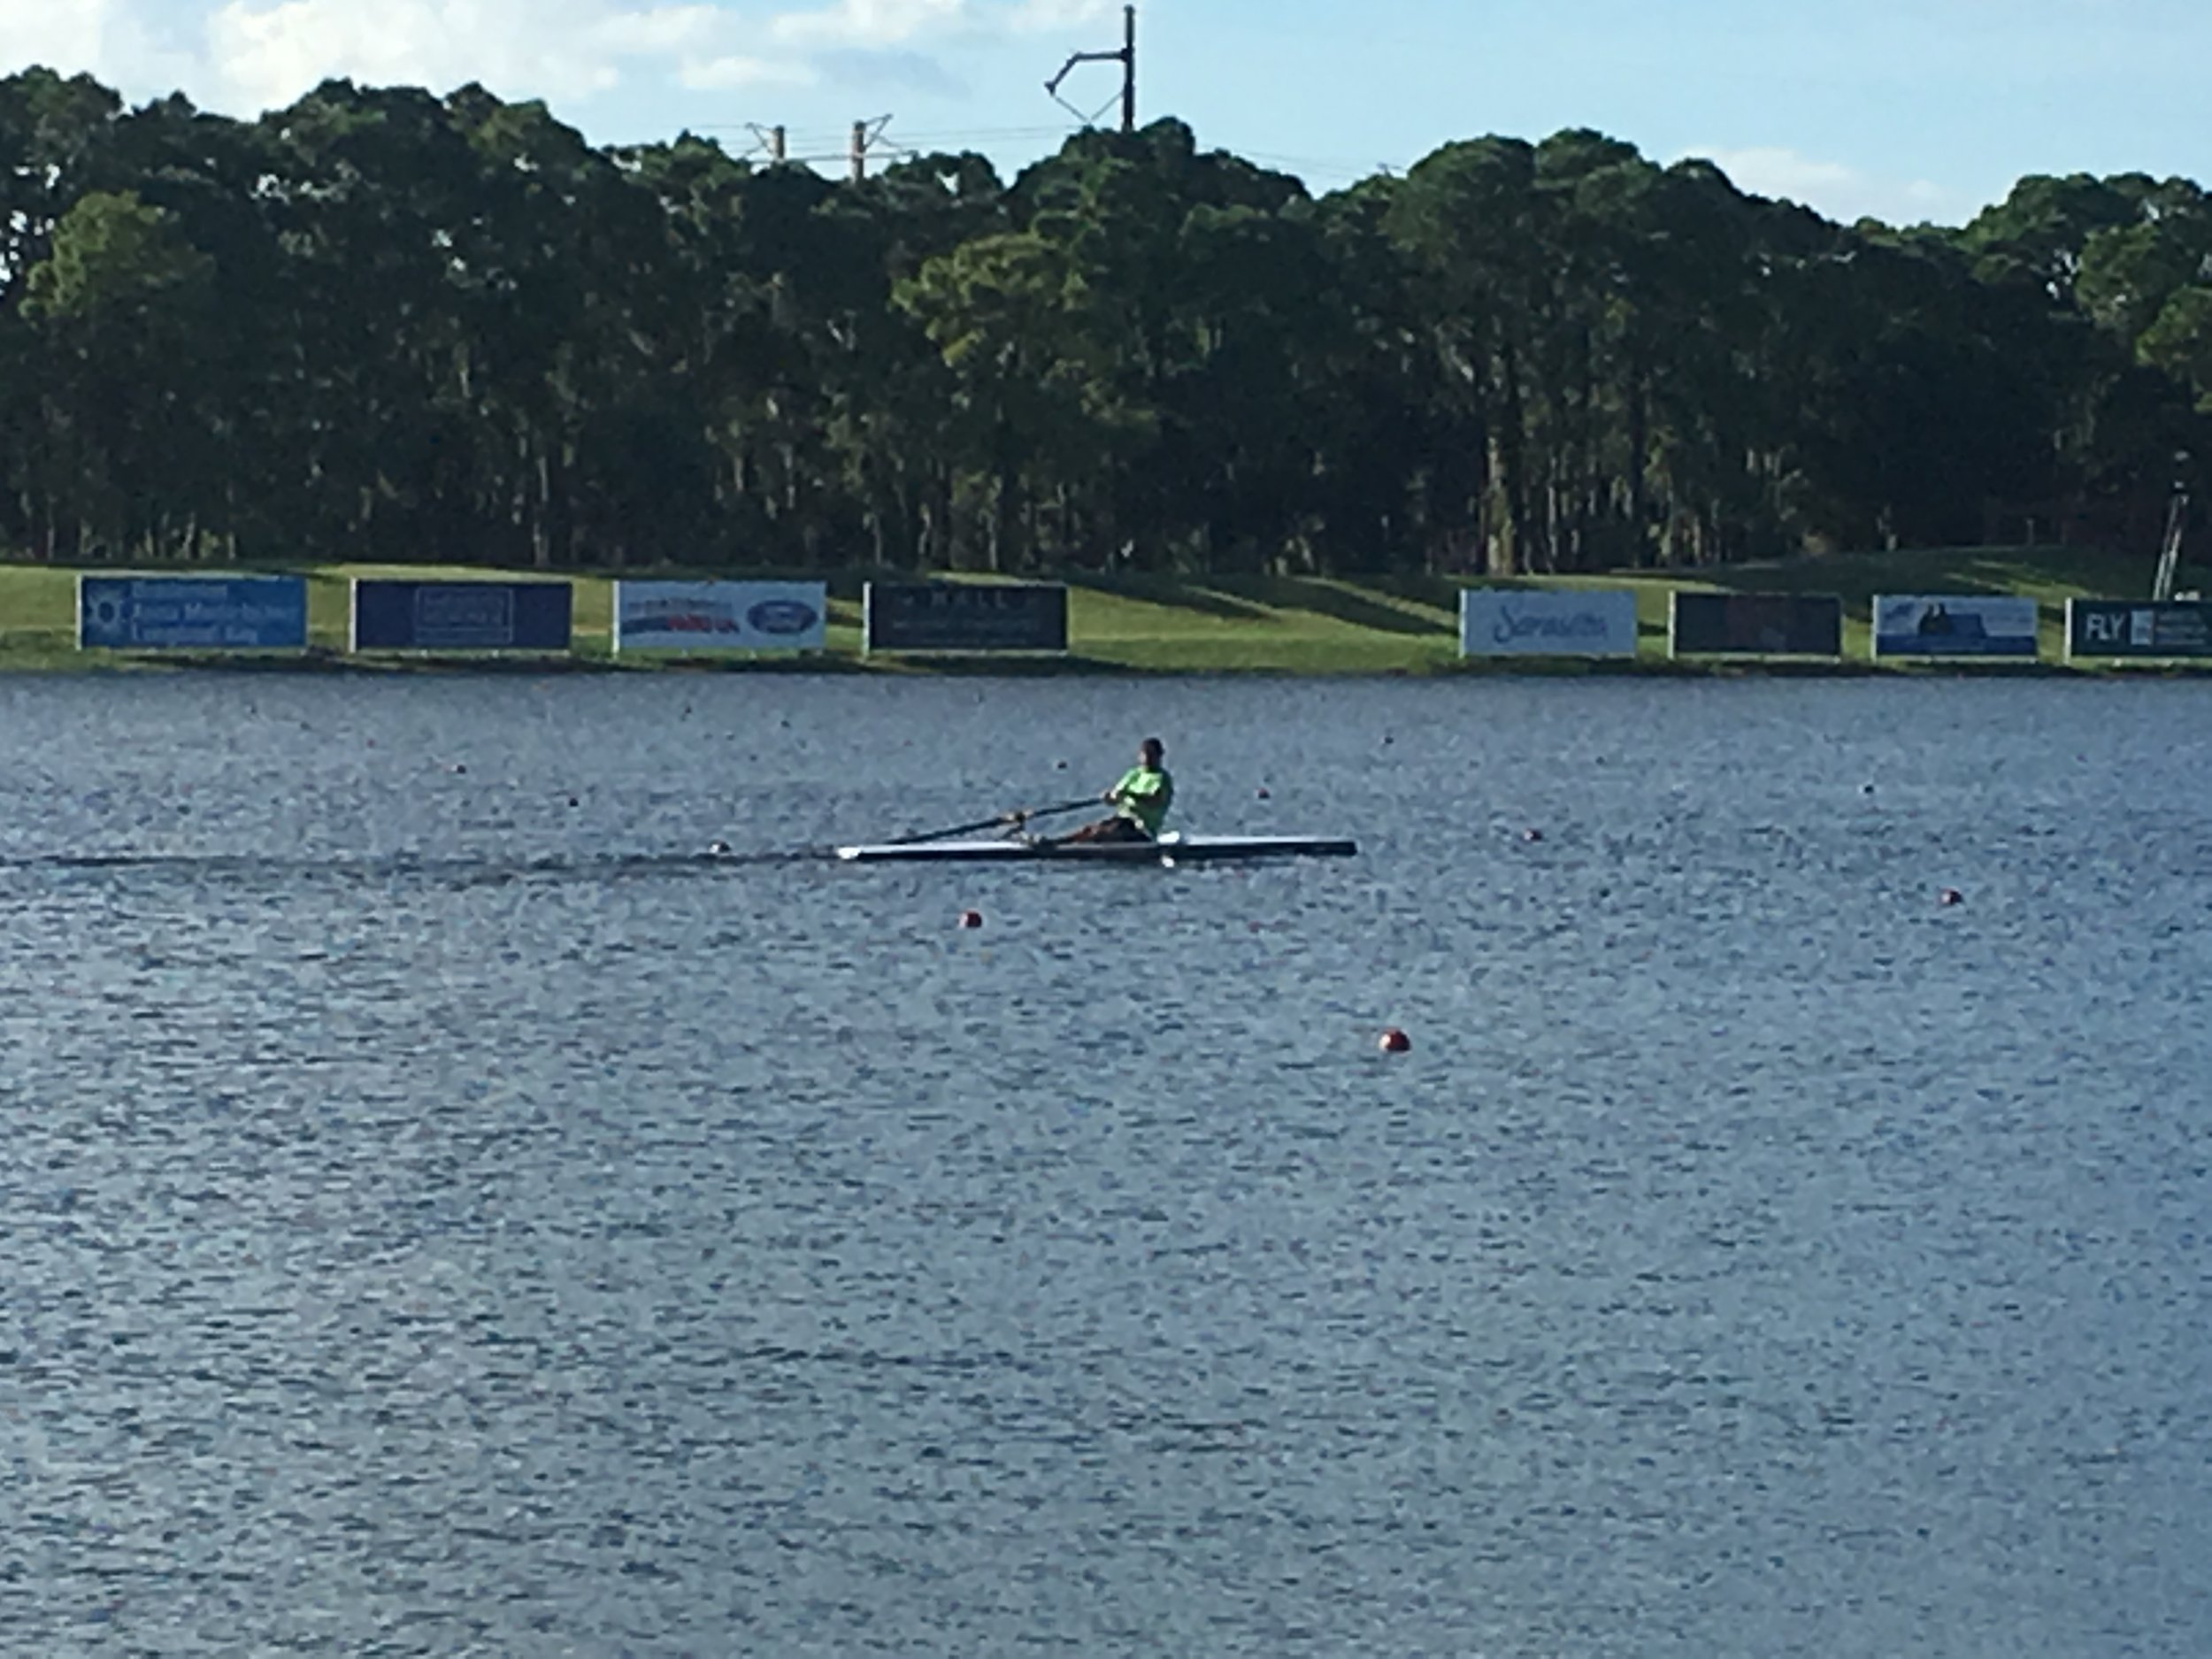 LiteRiver on the course - And here he is heading for the finish in style!!